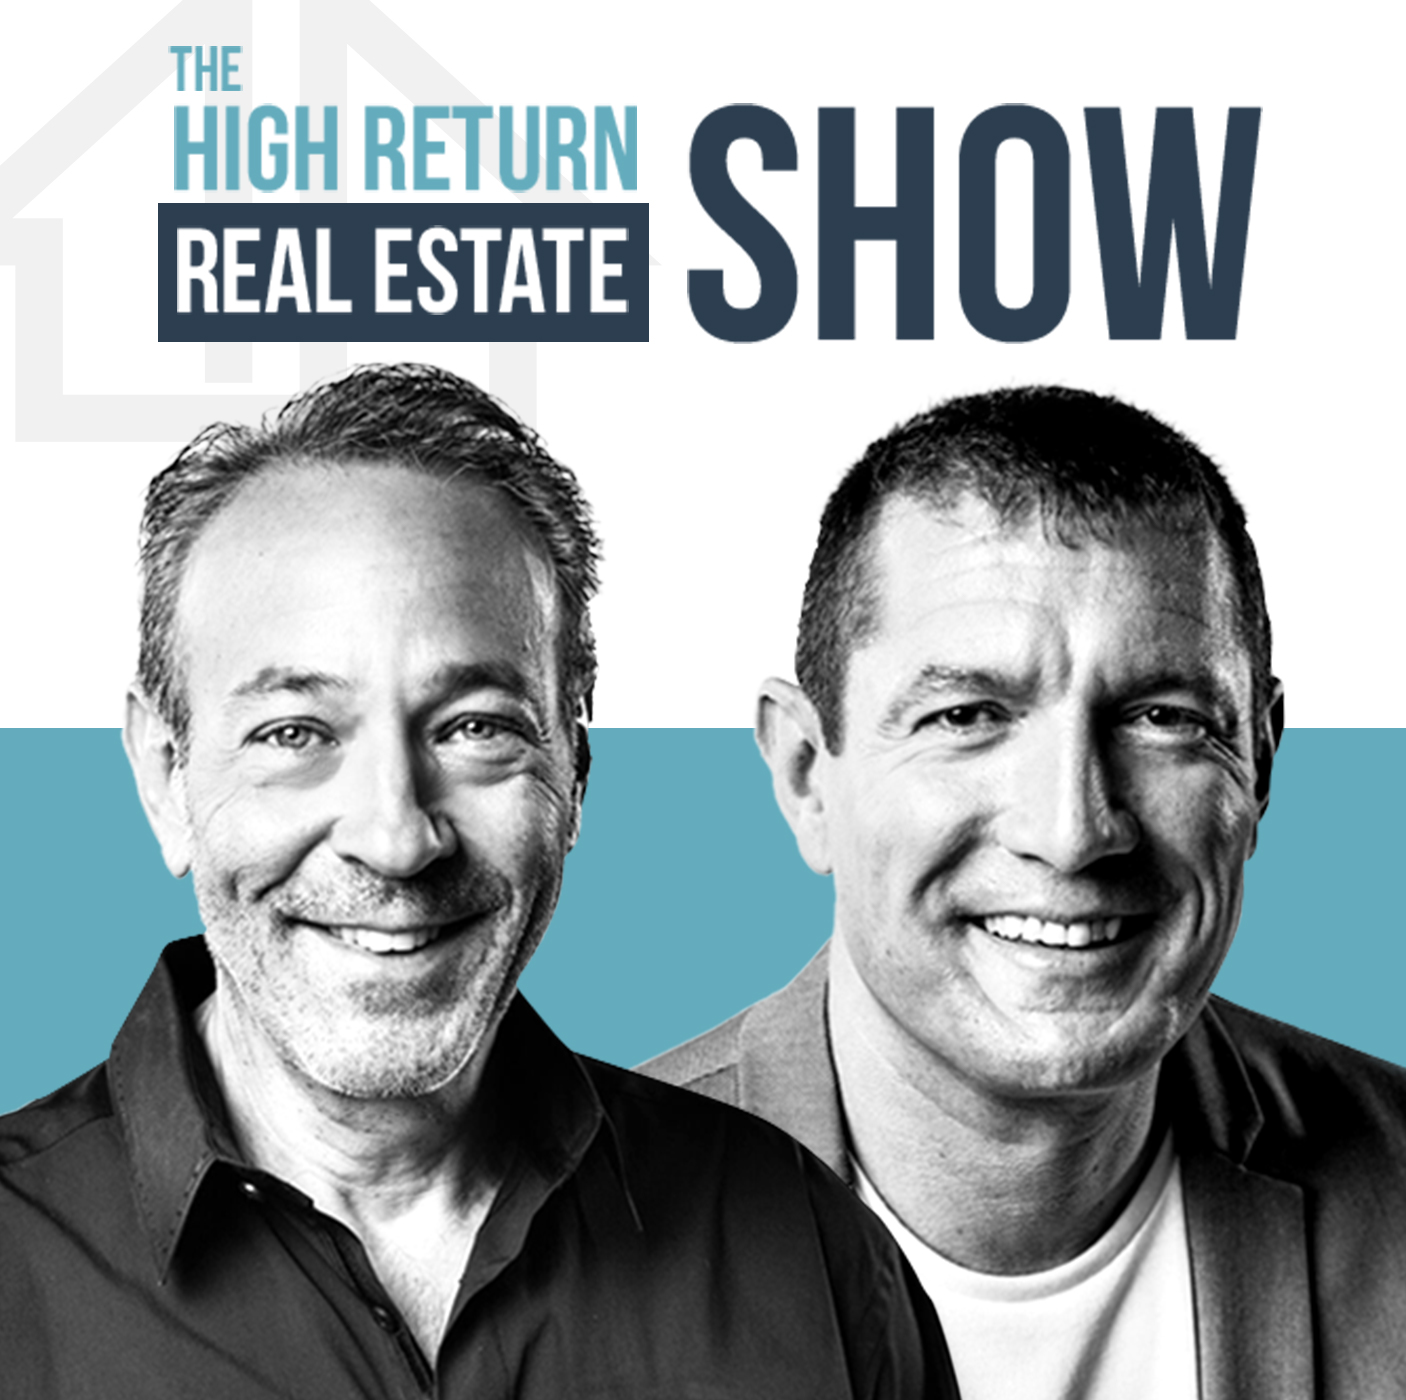 Episode #71 - How To Make 4X Your Normal Returns With Student Housing With Ryan Chaw show art